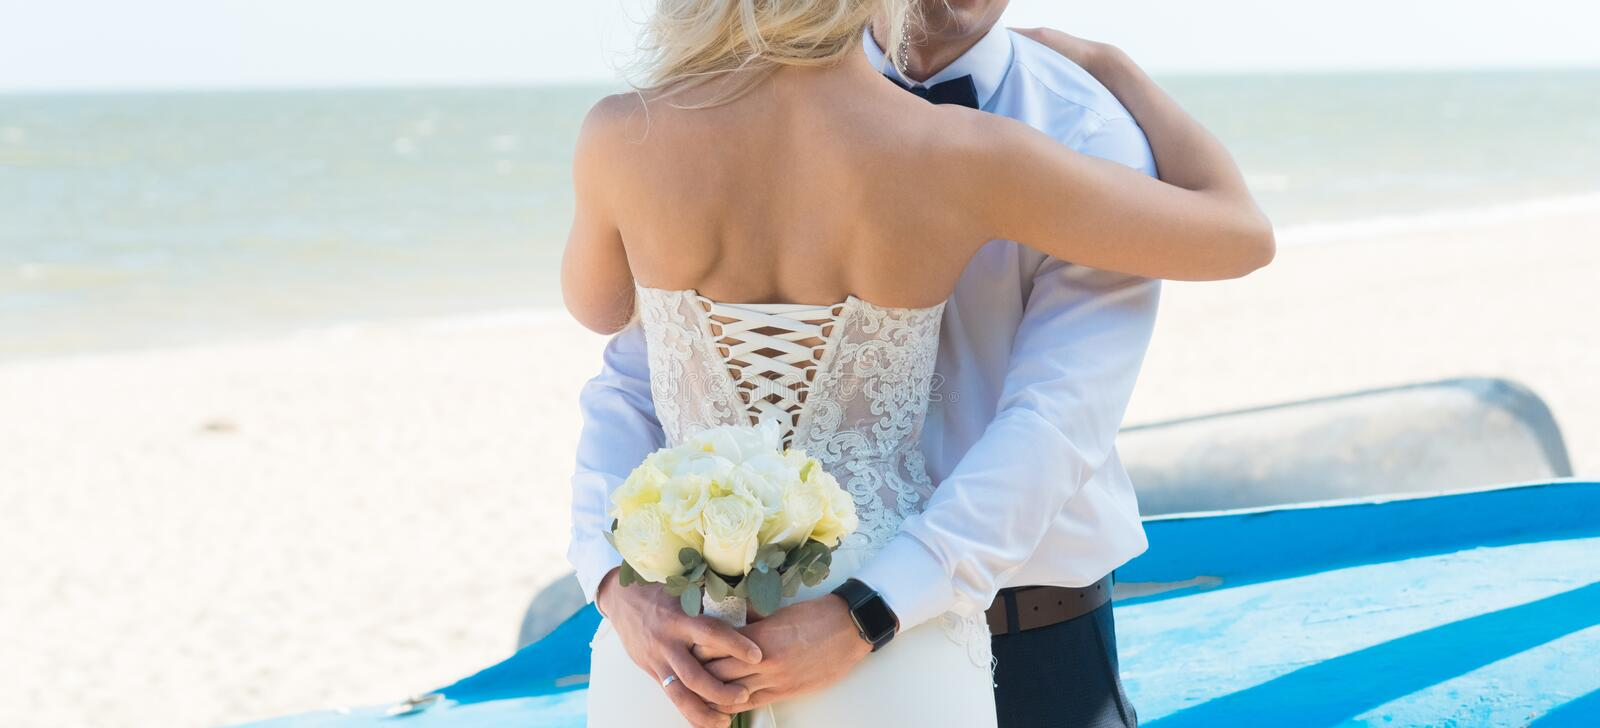 Bride and Groom, Kissing at Sunset on a Beautiful Beach, Romantic Married Couple royalty free stock photo